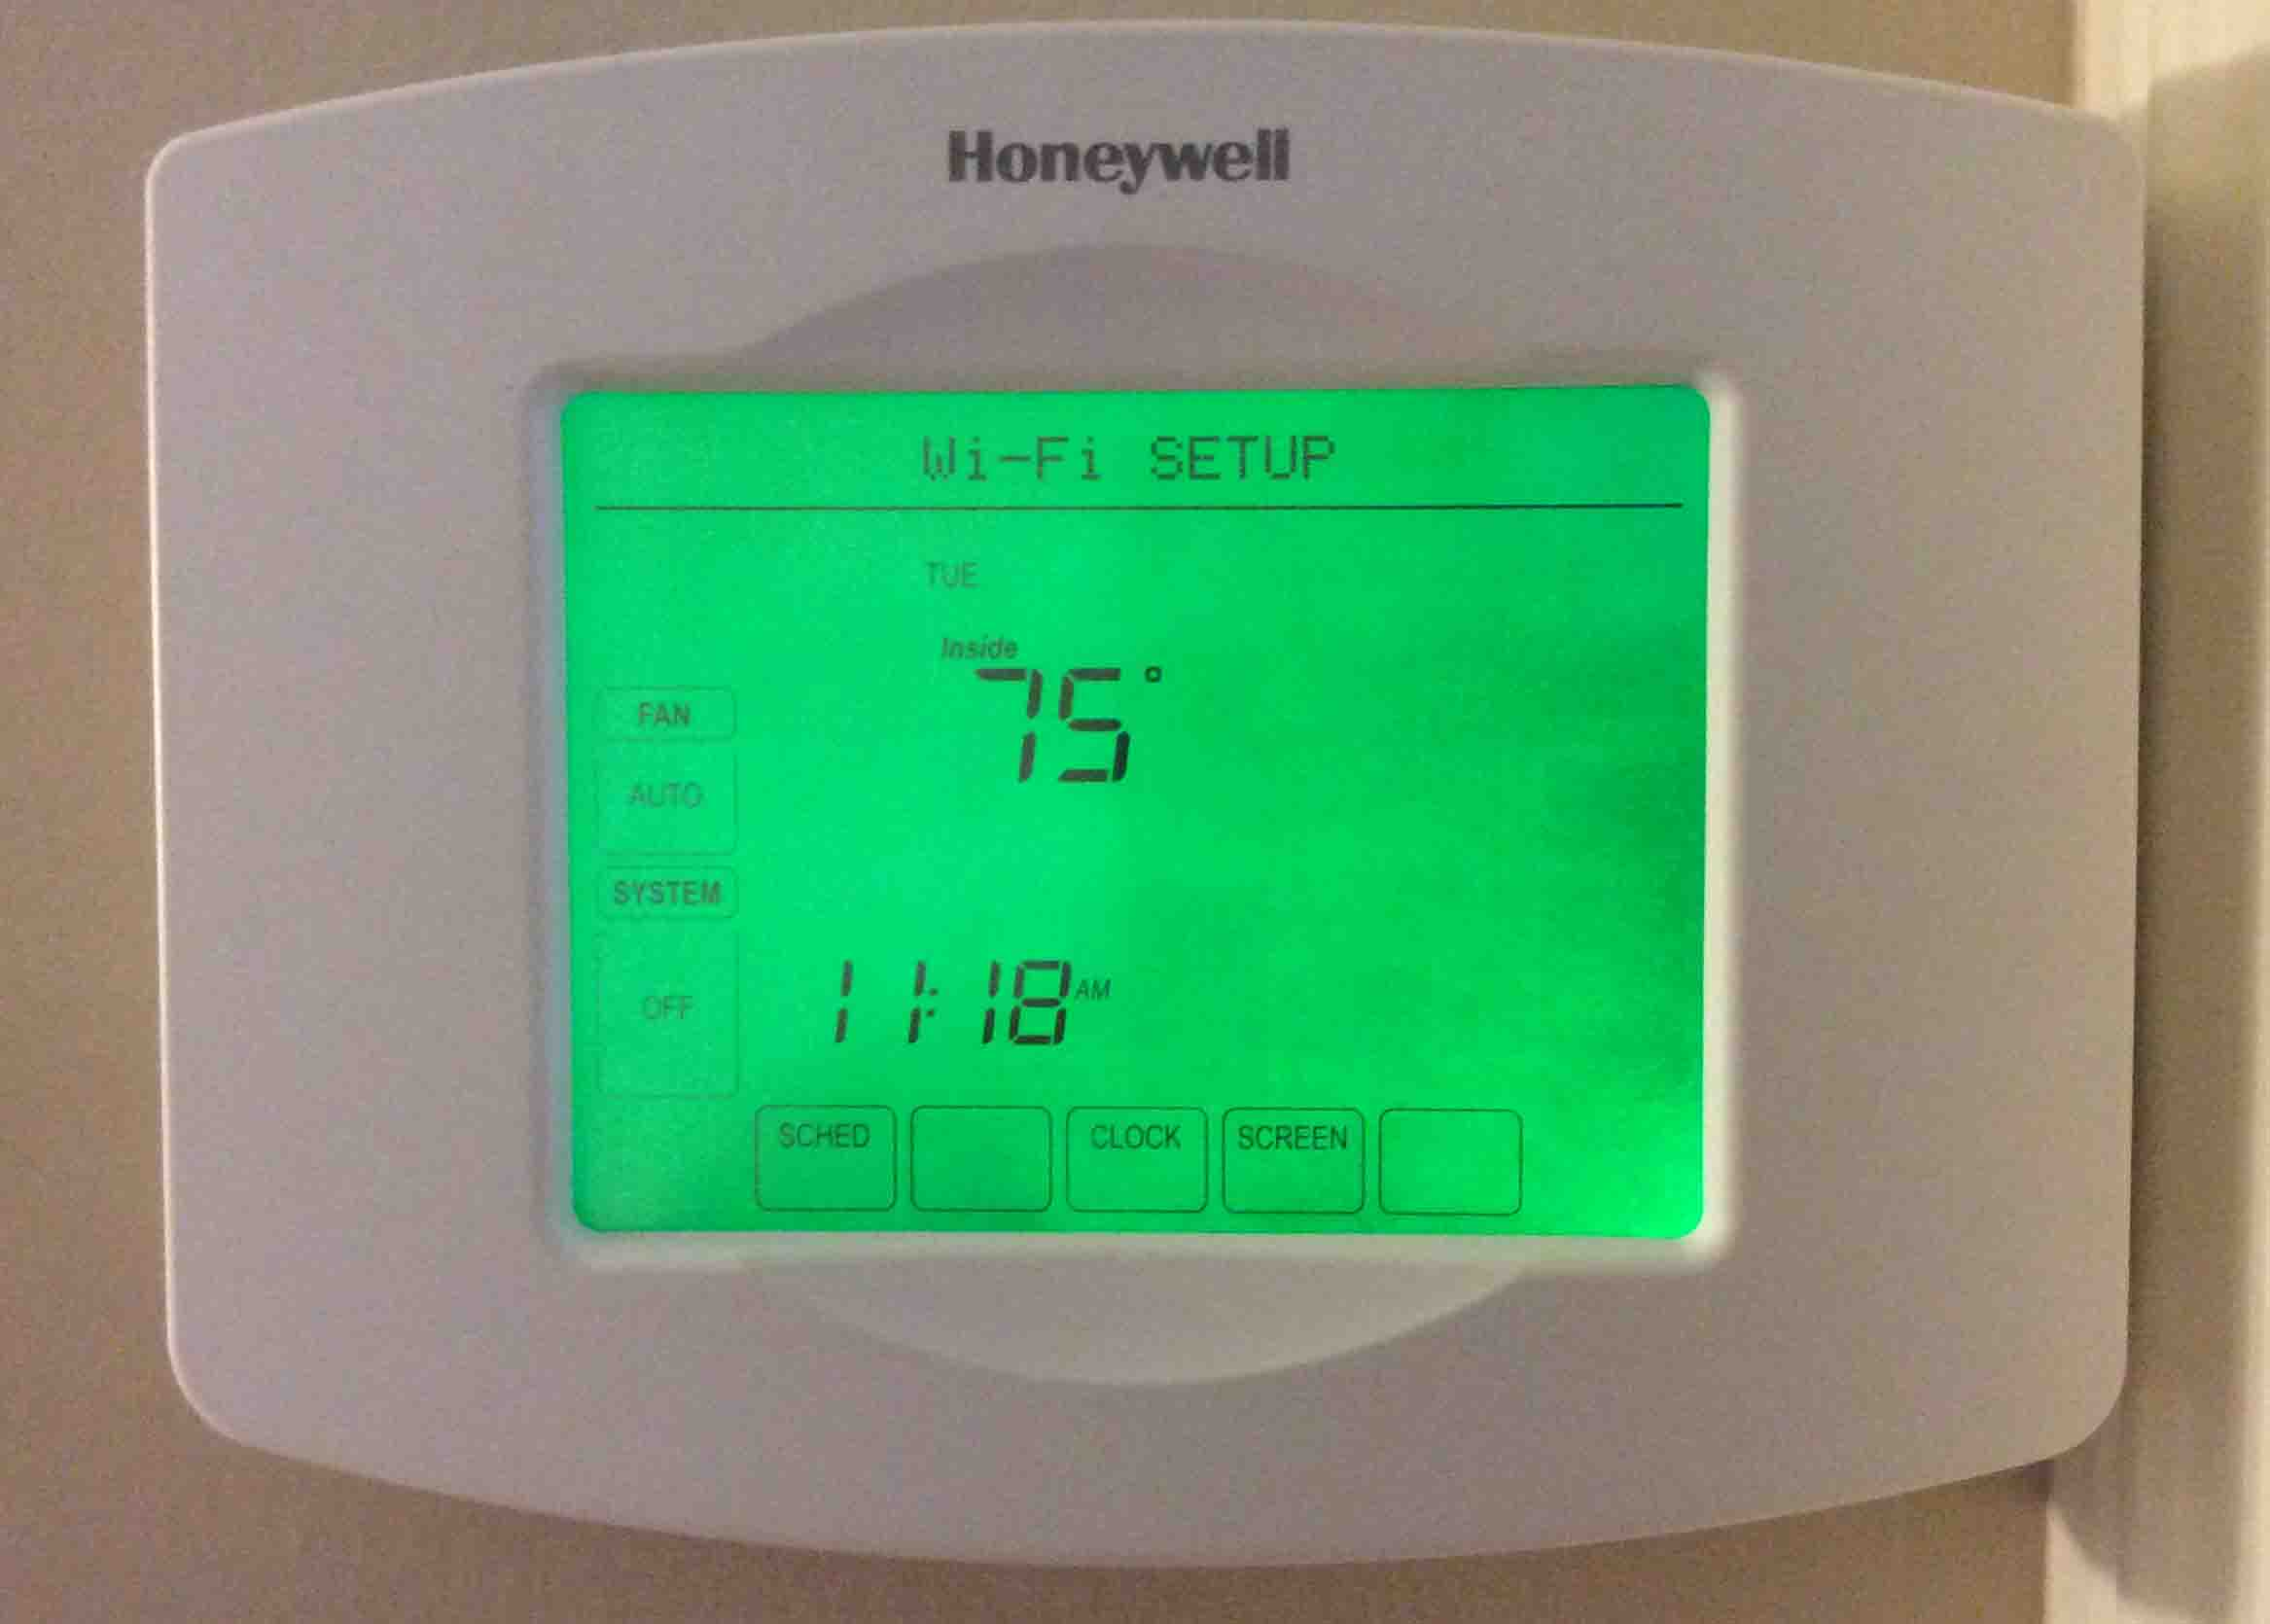 How To Reset Honeywell Thermostat Rth8580wf To Factory